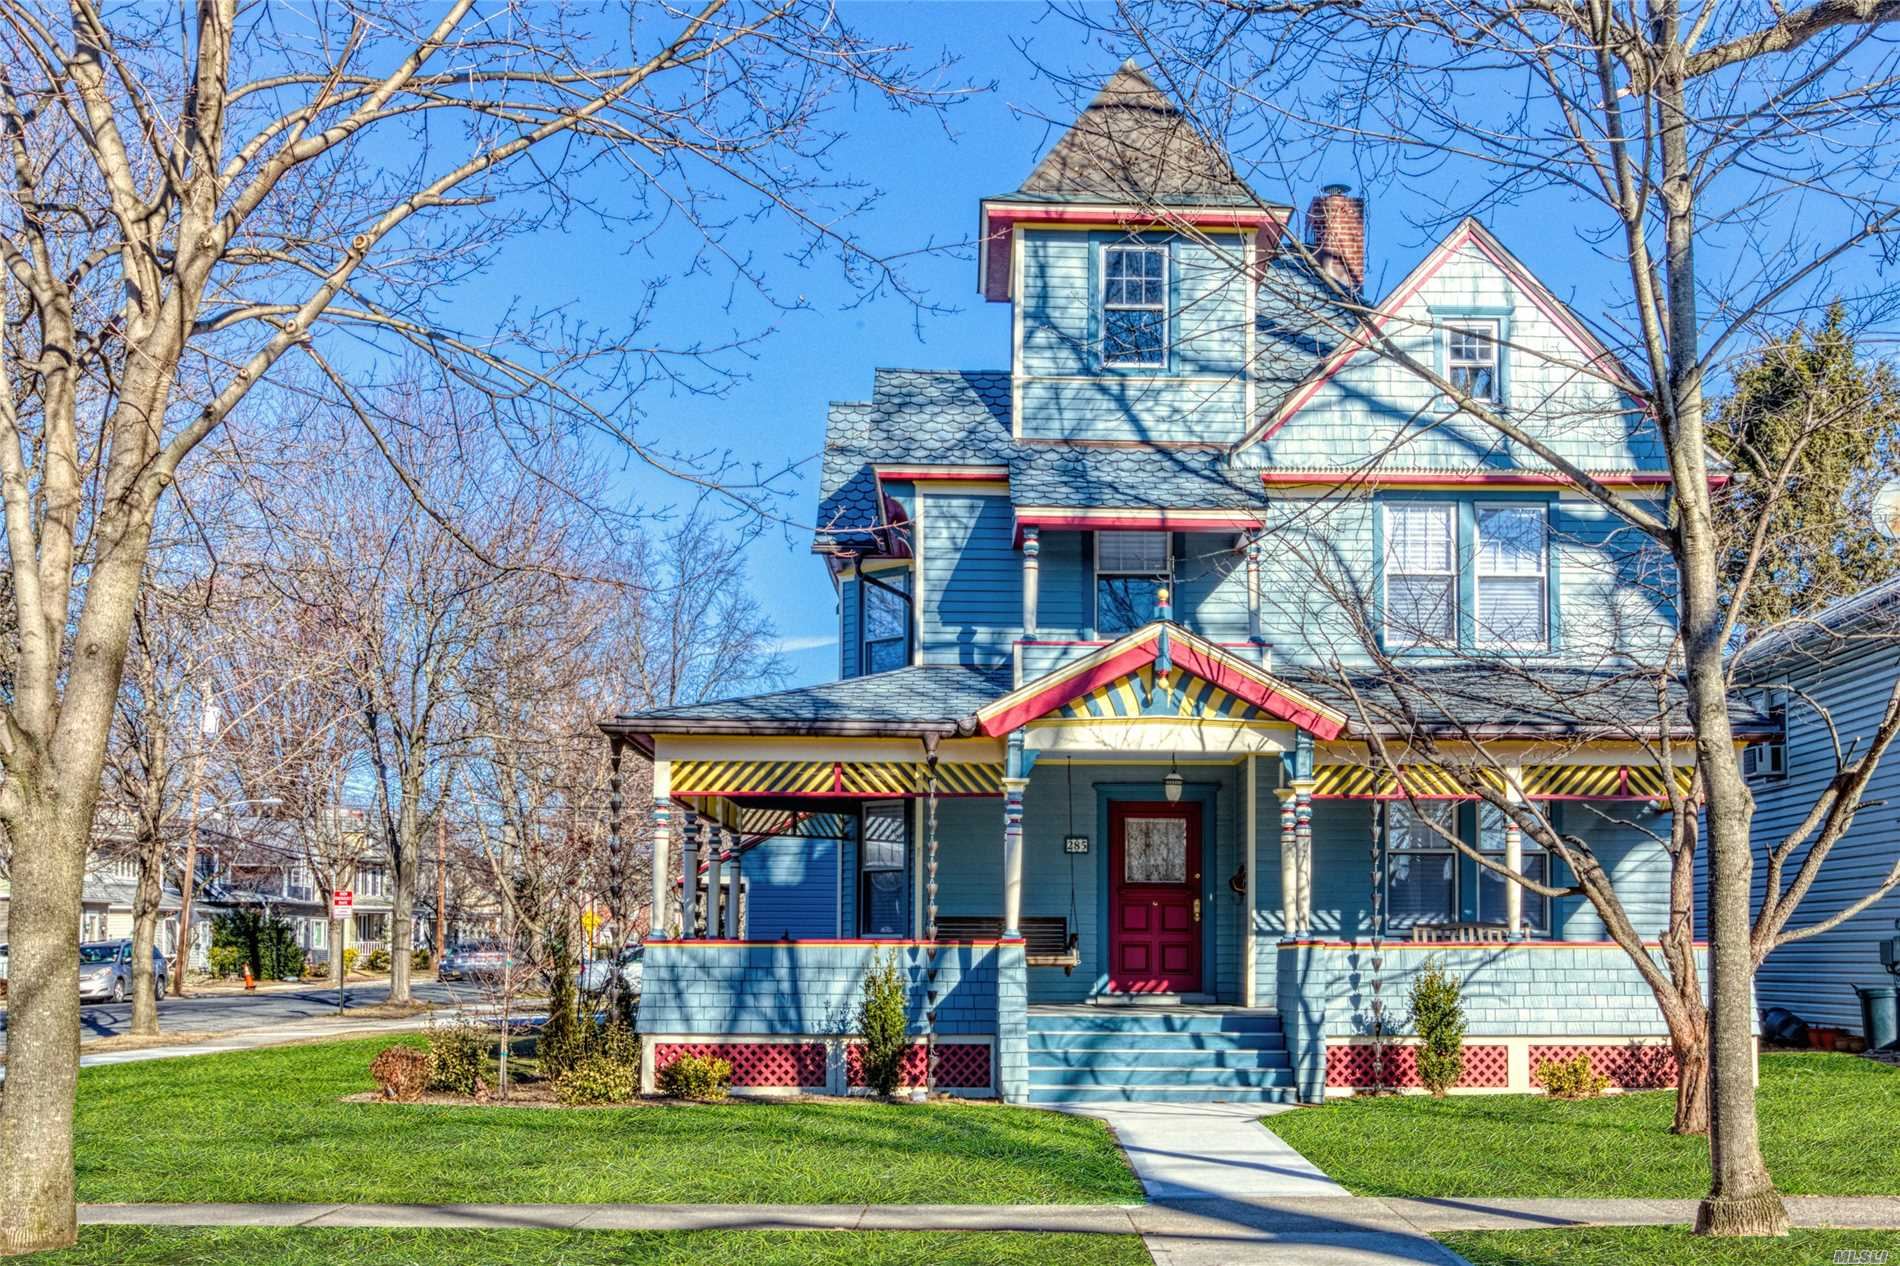 This Historic Victorian Home Is A Perfect Mix Of Classic And New!! Original Period Architectural Details On The Exterior/Interior Have Been Preserved. Inviting Front Porch/W Swing Bench, Hardwood Floors Throughout, Original Pocket Doors, Fireplace(Wood), 2 Staircases Between 1st/2nd Floors. Modern Improvements Include Top Of The Line Kitchen, Quartz Countertops/Island And Frigidaire Gallery Appliances. Updated Electric 200 Amp, Heating(New Furnace), New Hot Water Tank-50 Gallon.